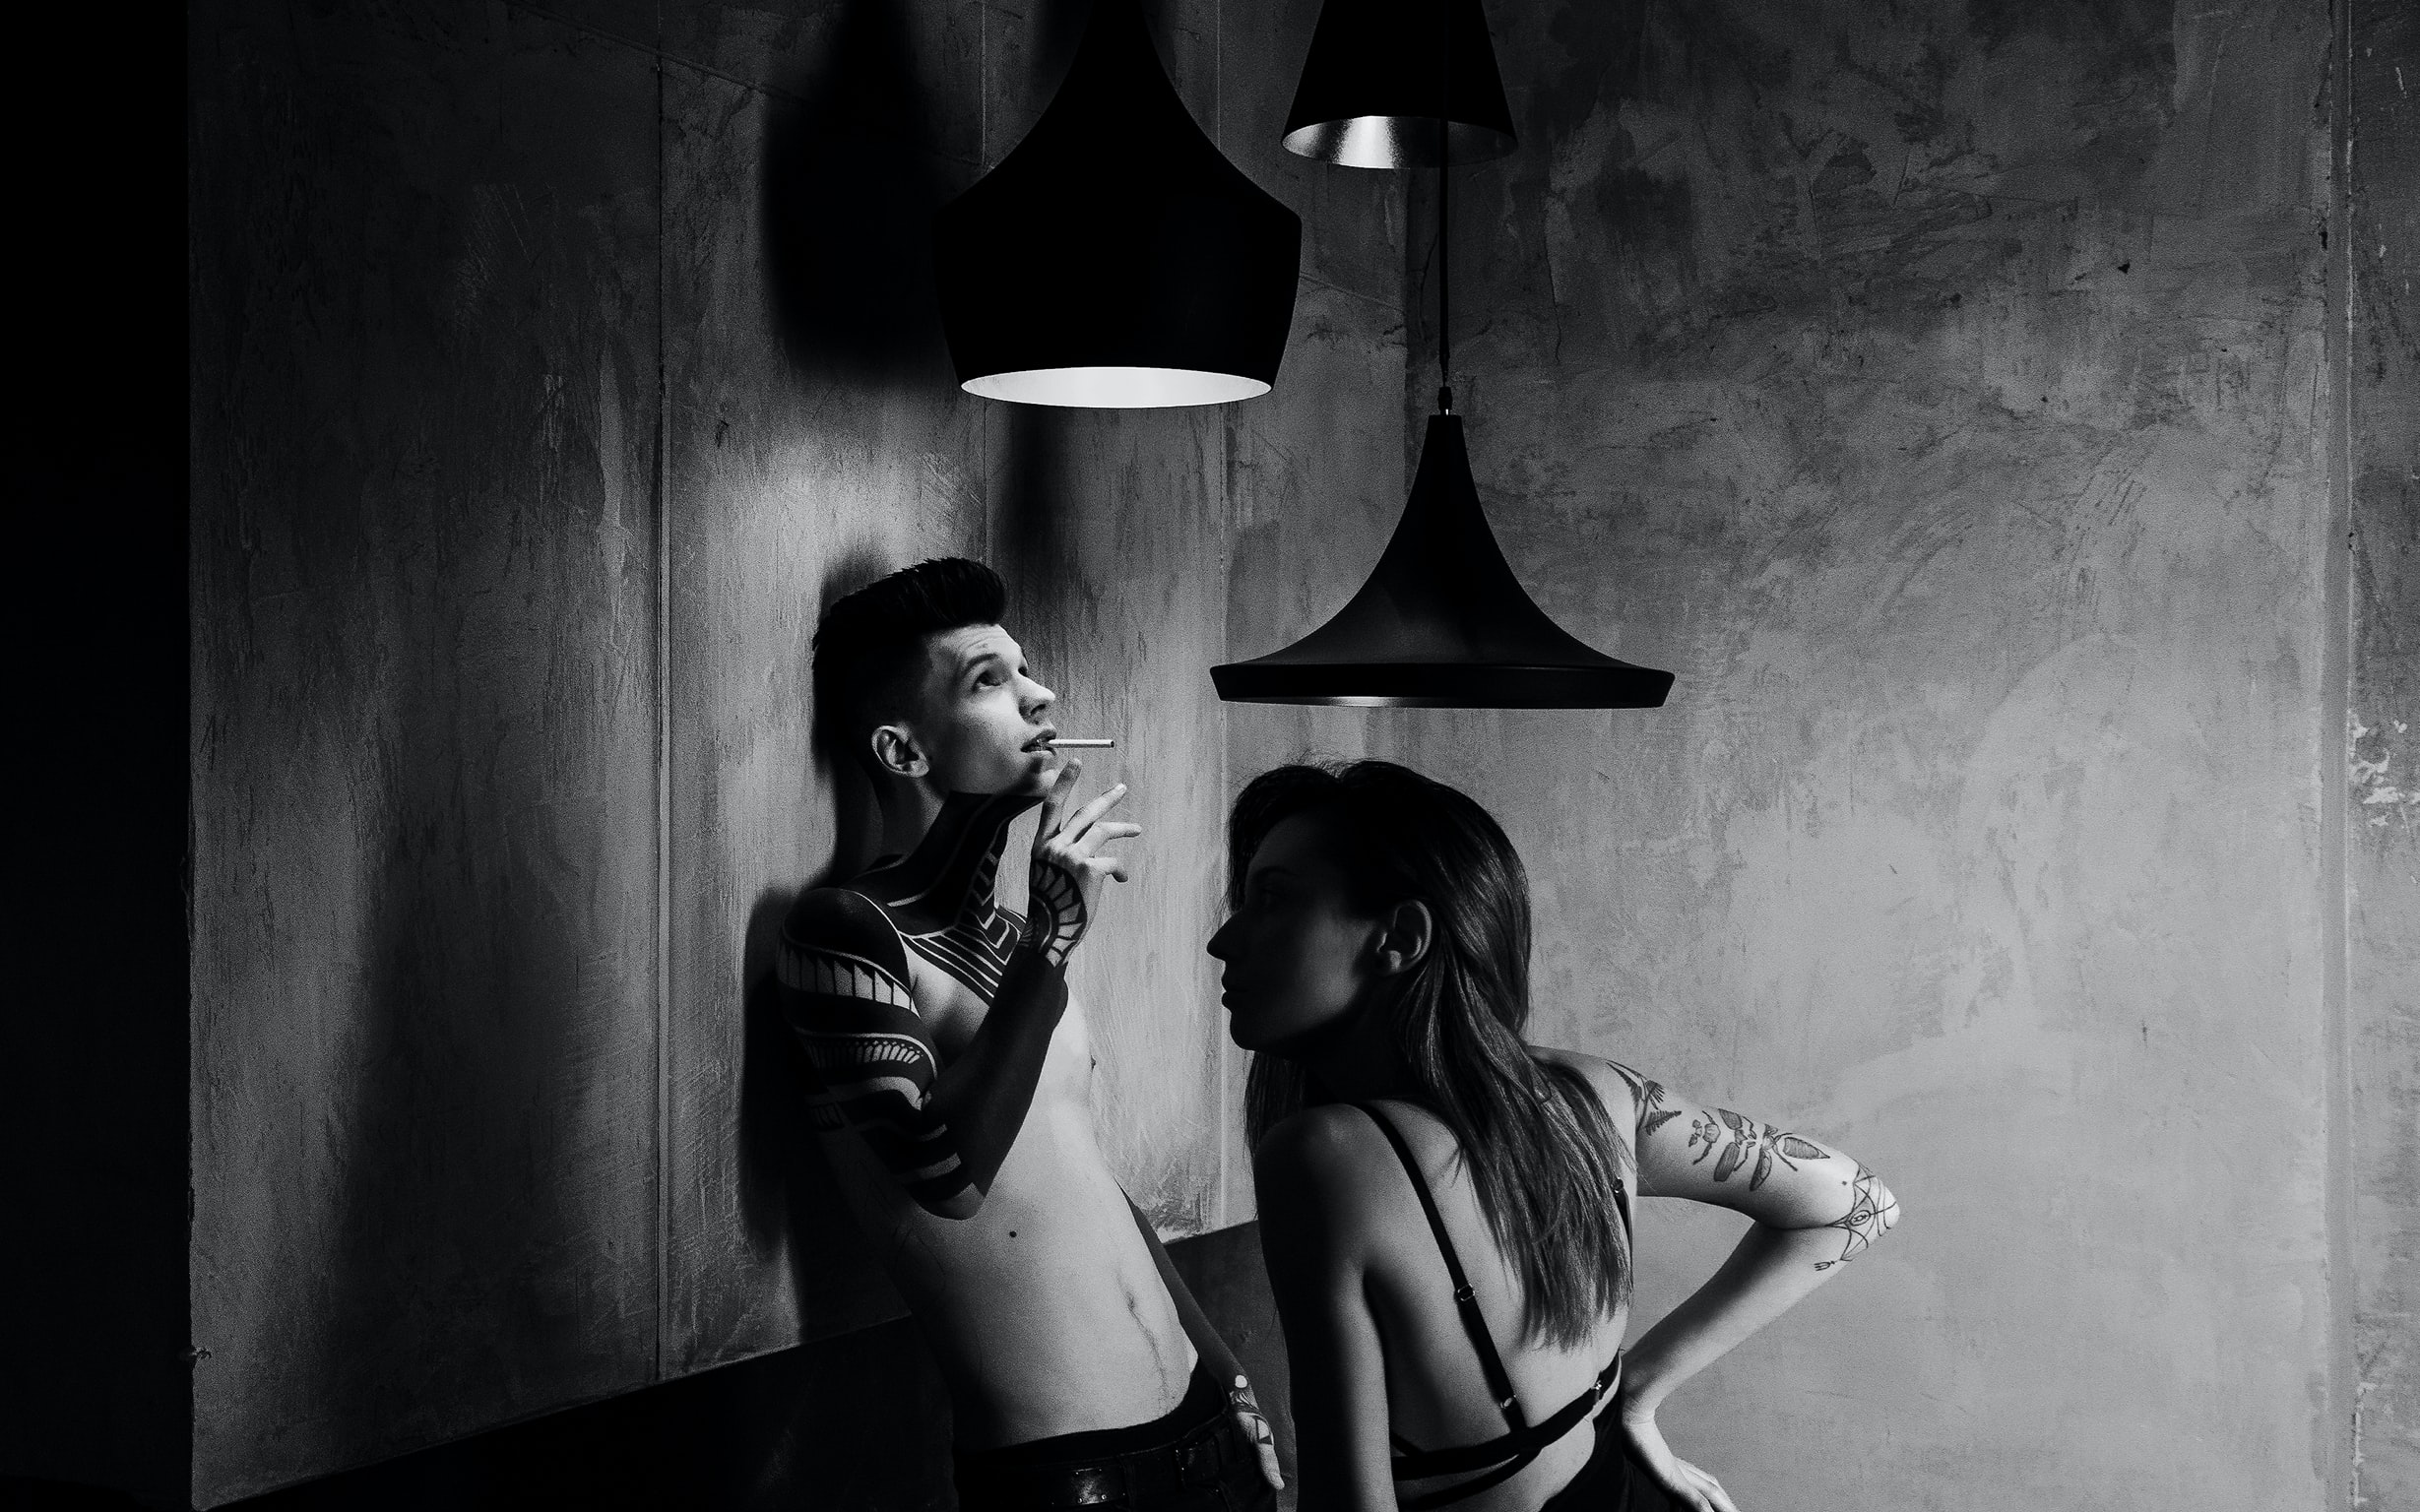 Black and white shot of topless man with tattoos smoking with woman under ceiling lamps